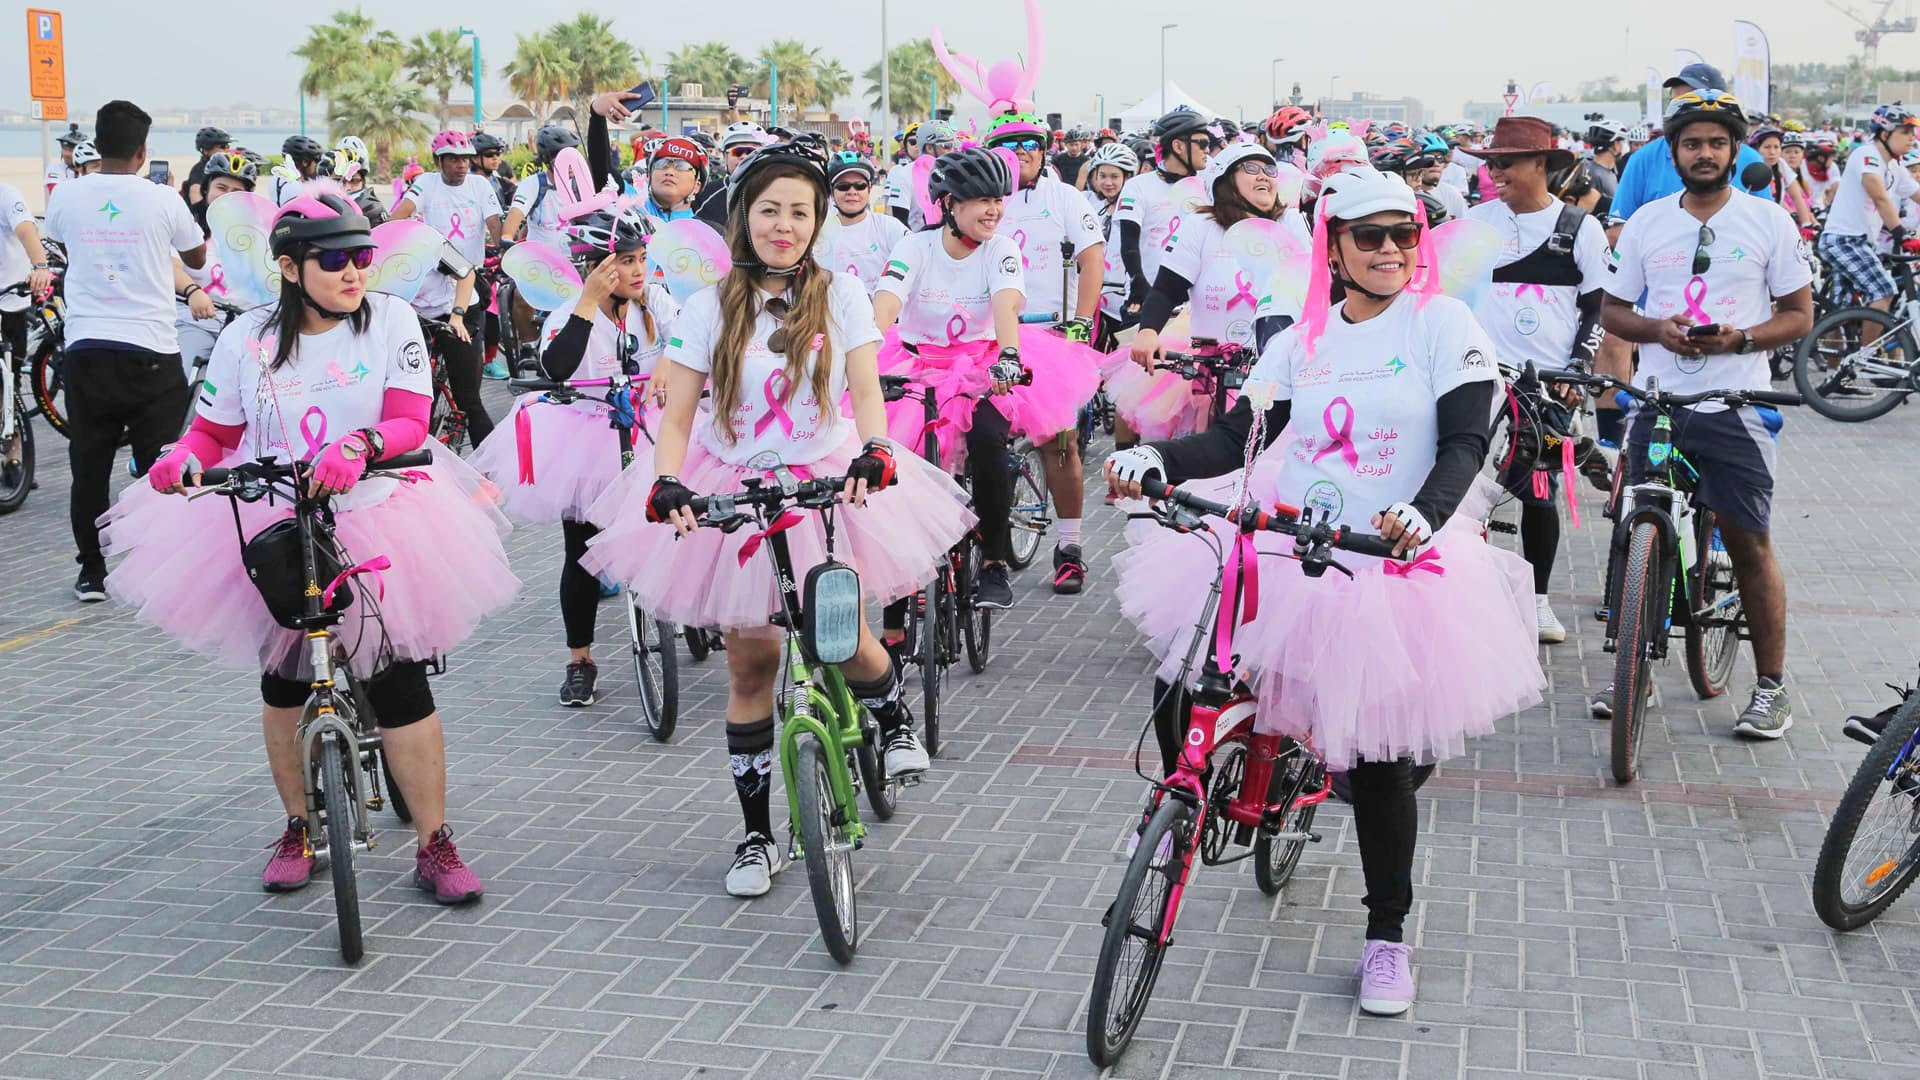 Dubai Pink Ride 2019 on Nov 1st at Sunset Mall